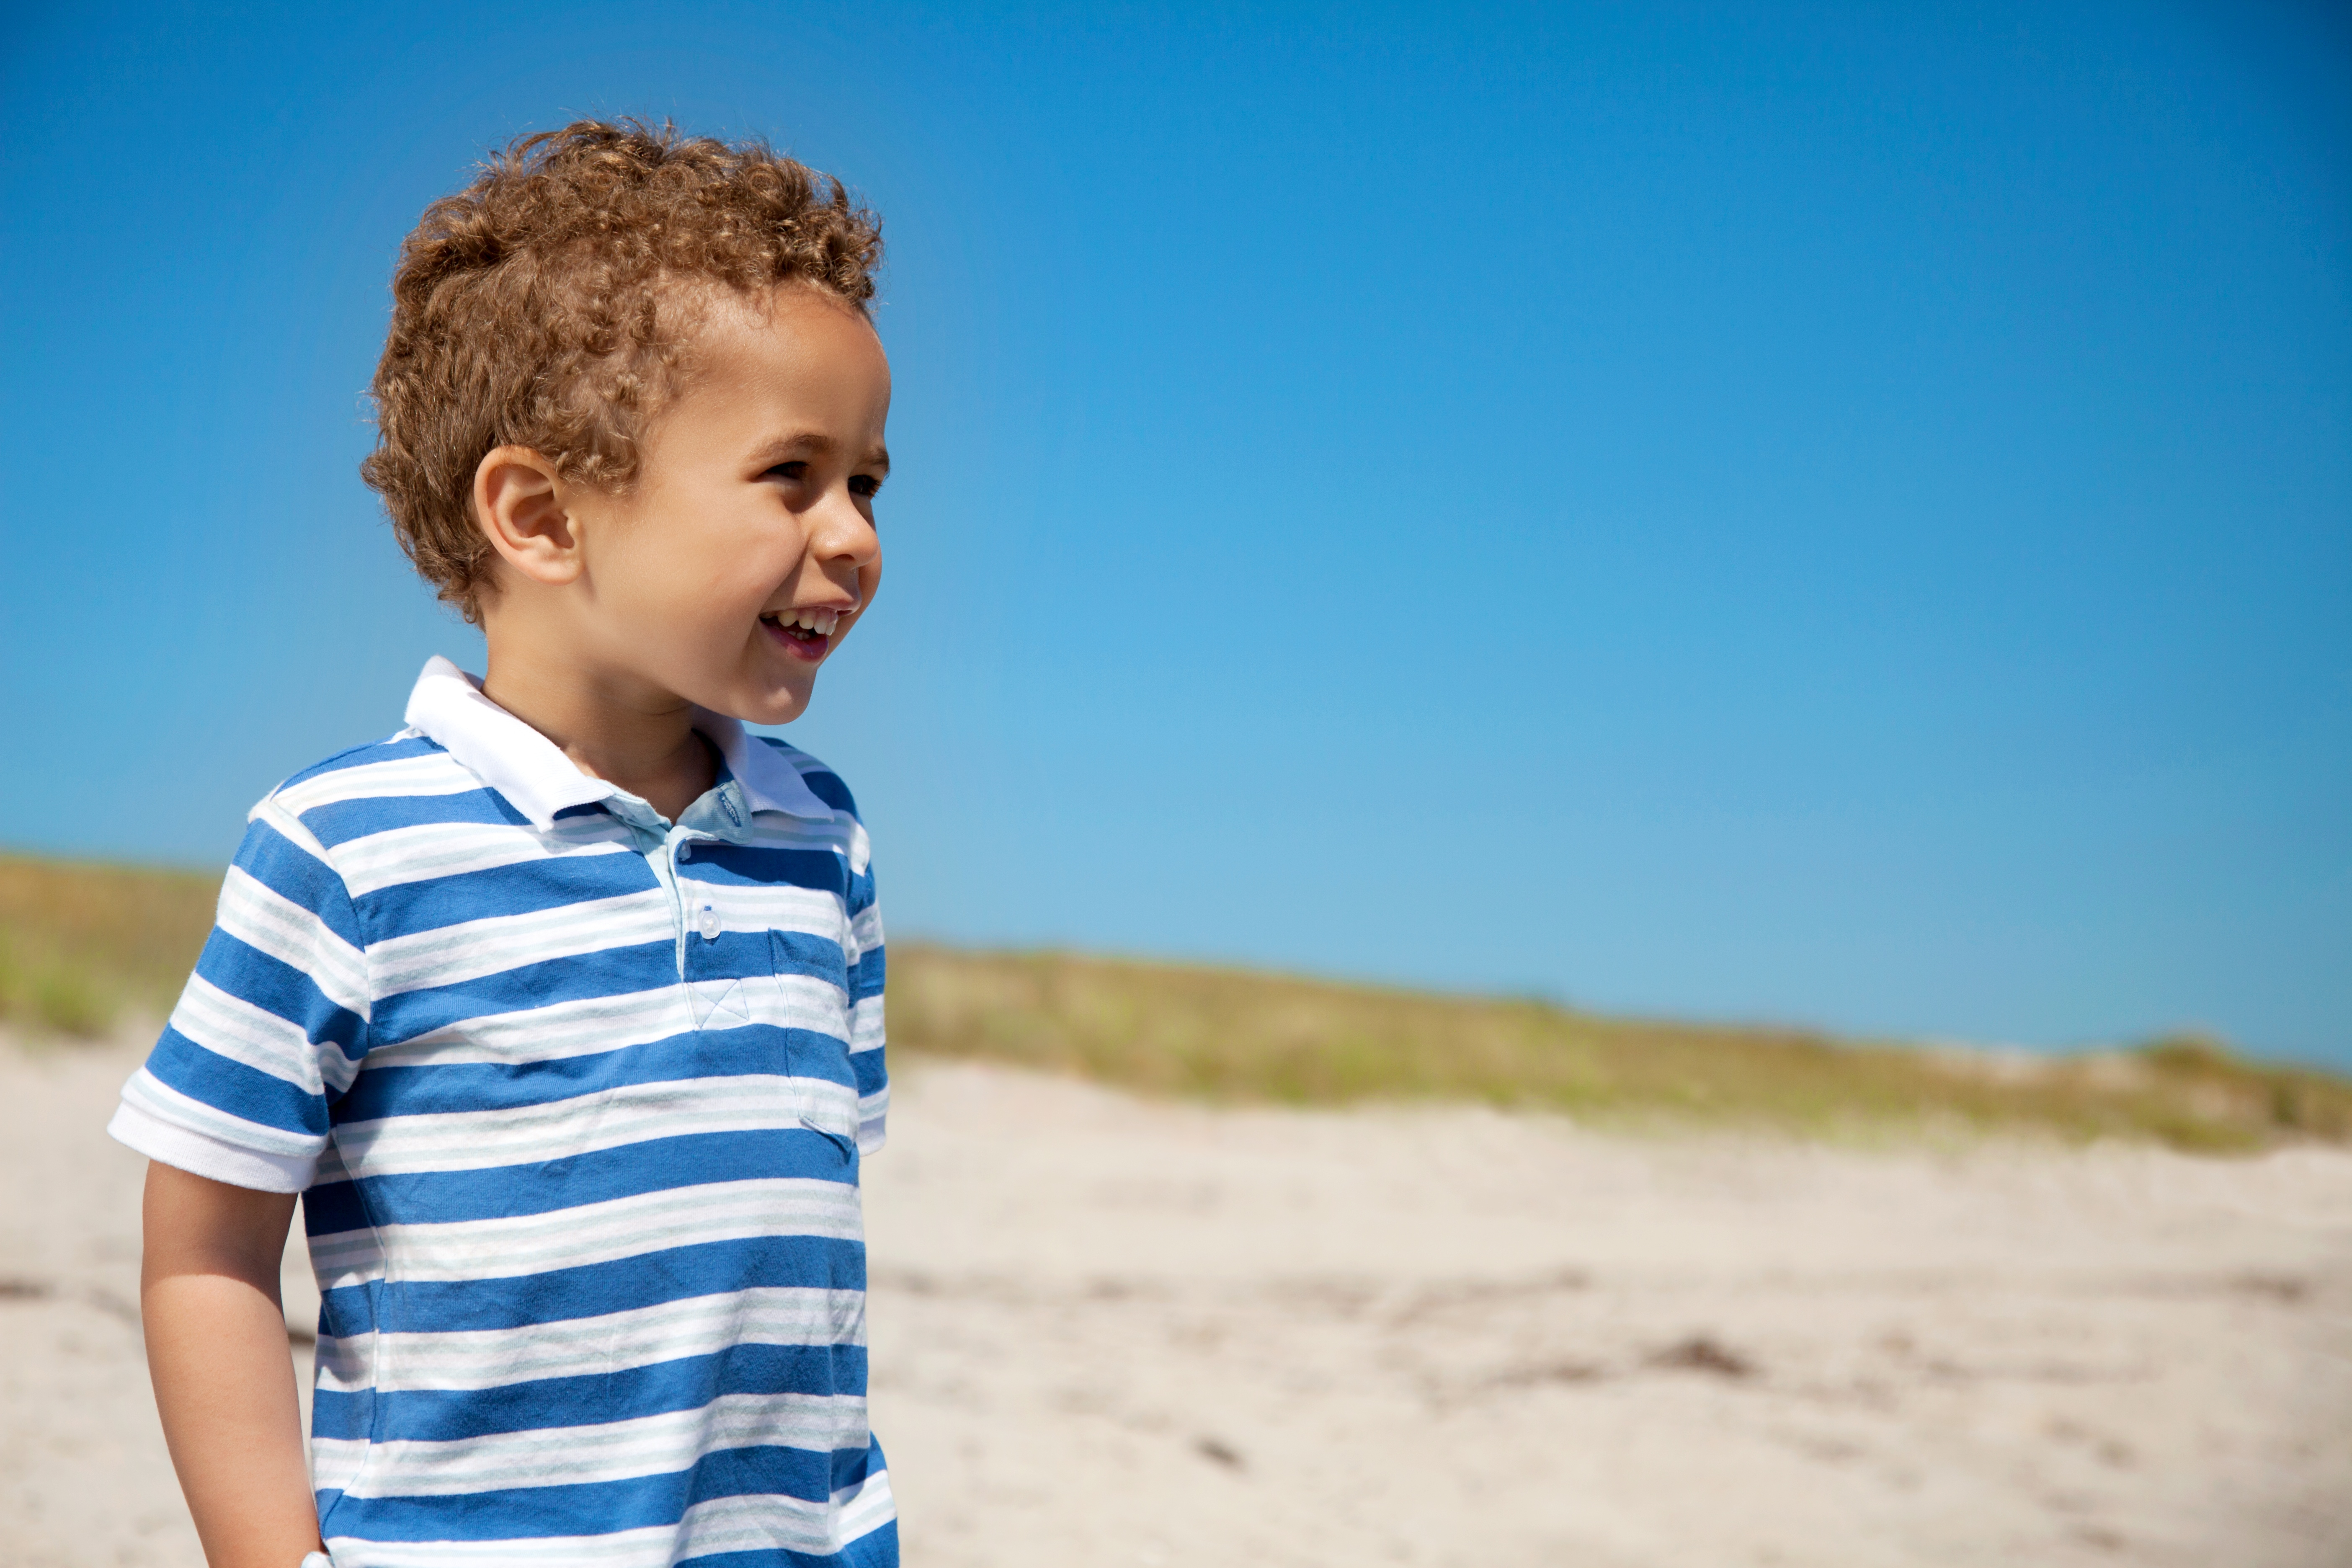 adorable-little-boy-enjoying-the-outdoors-against-the-blue-sky_r6Fw0BEKg